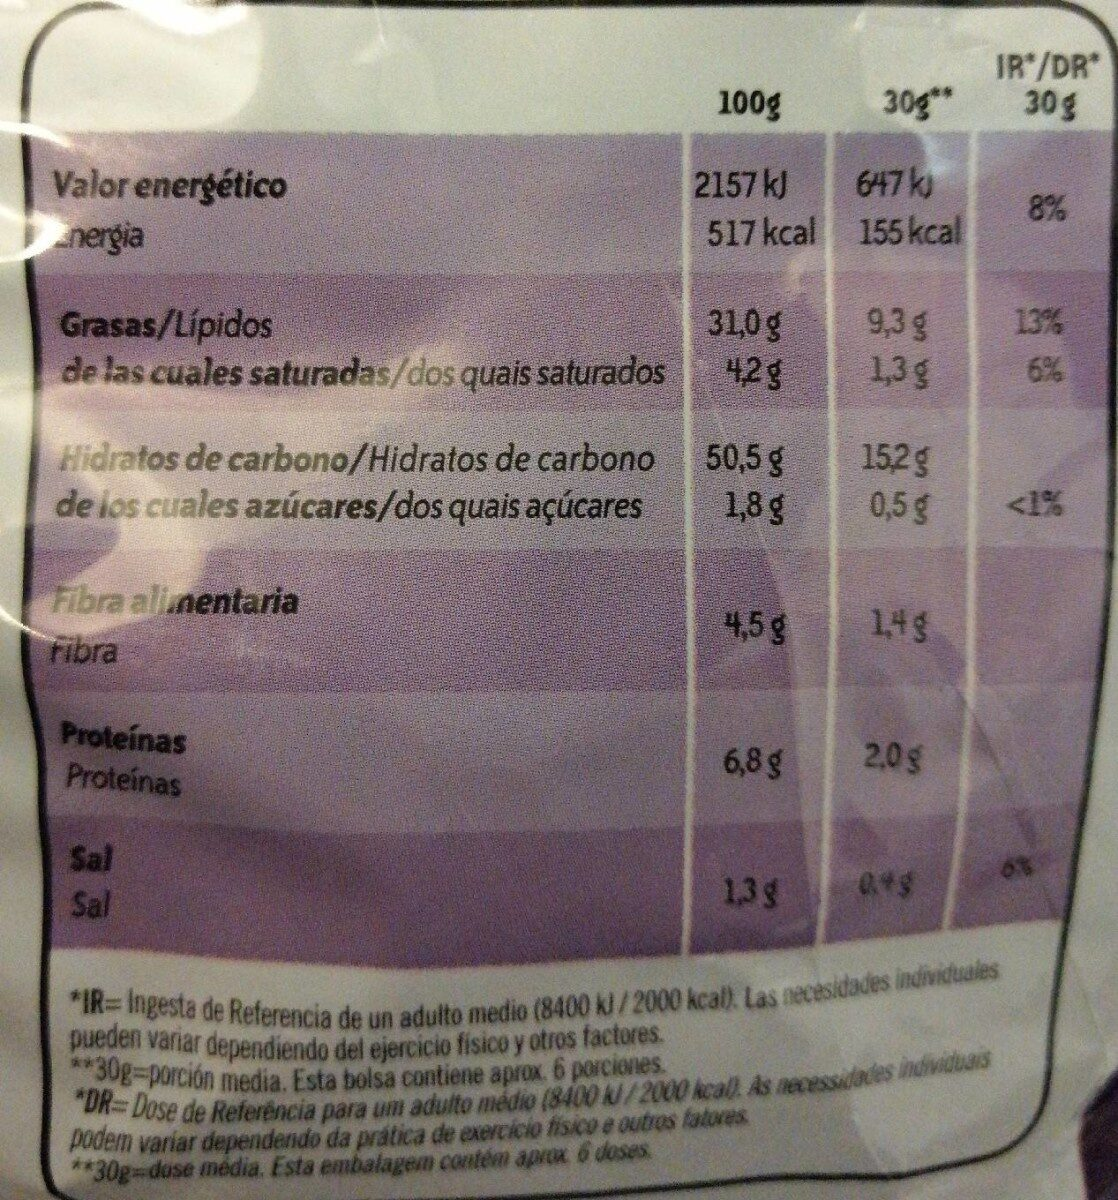 Patatas fritas sabor jamón - Nutrition facts